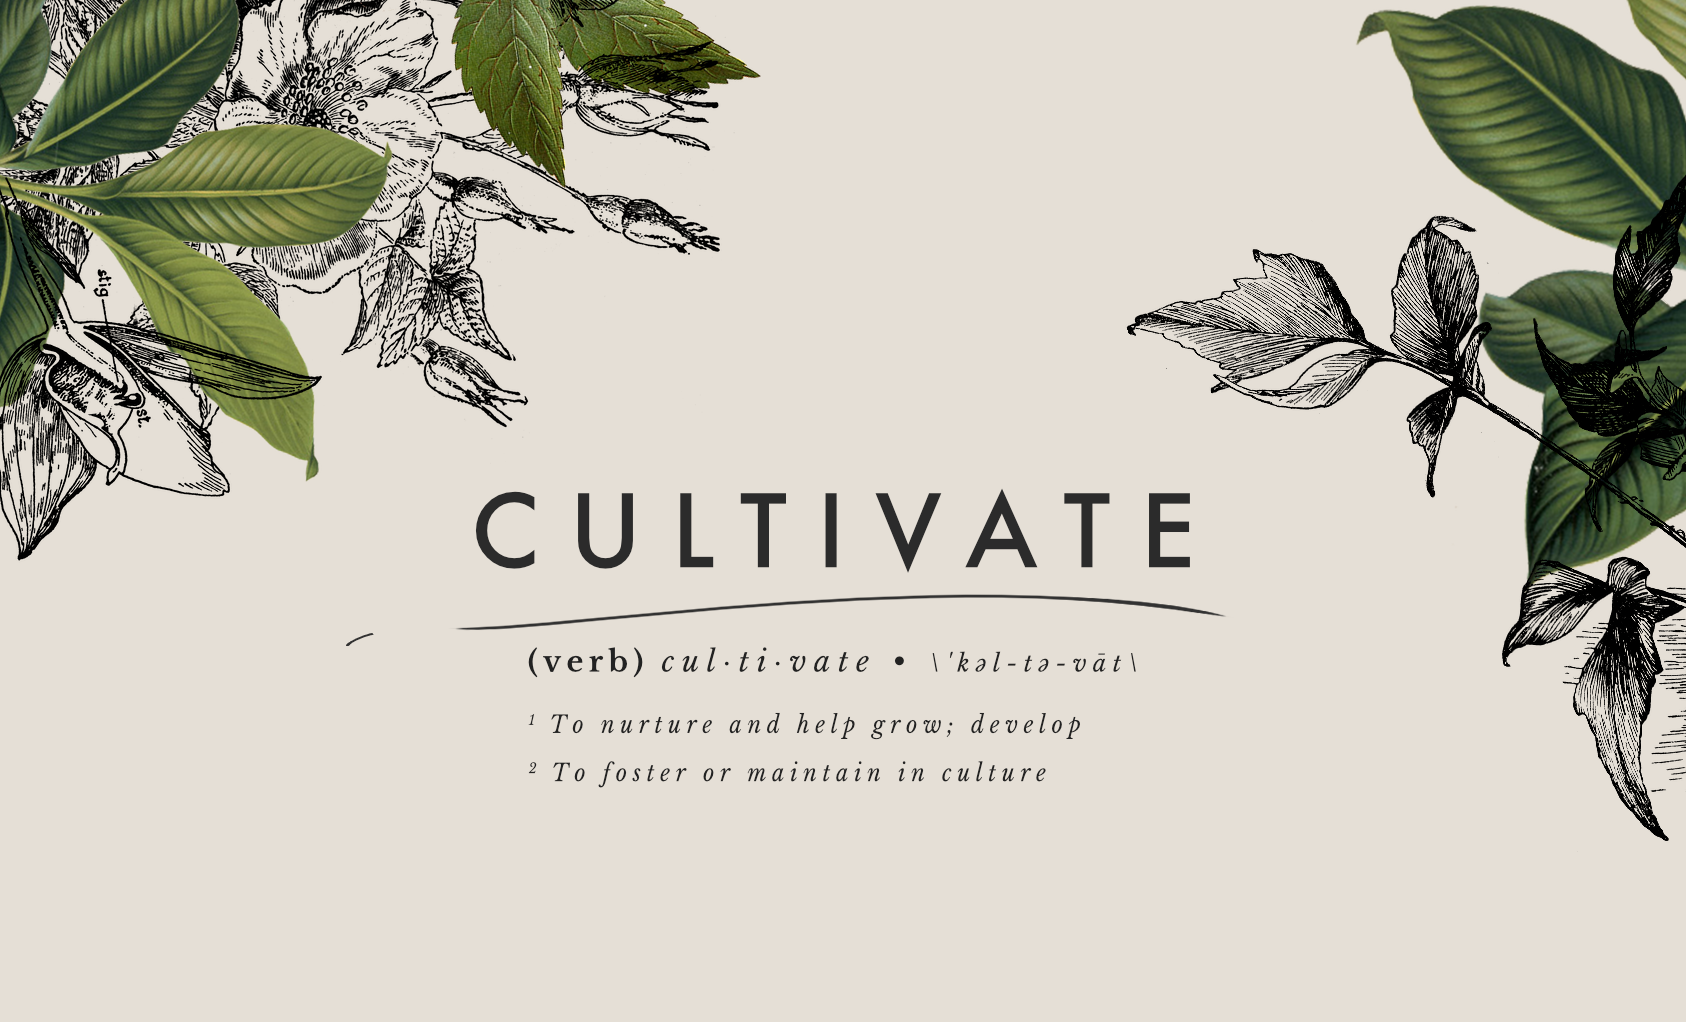 CultivateBanner.png